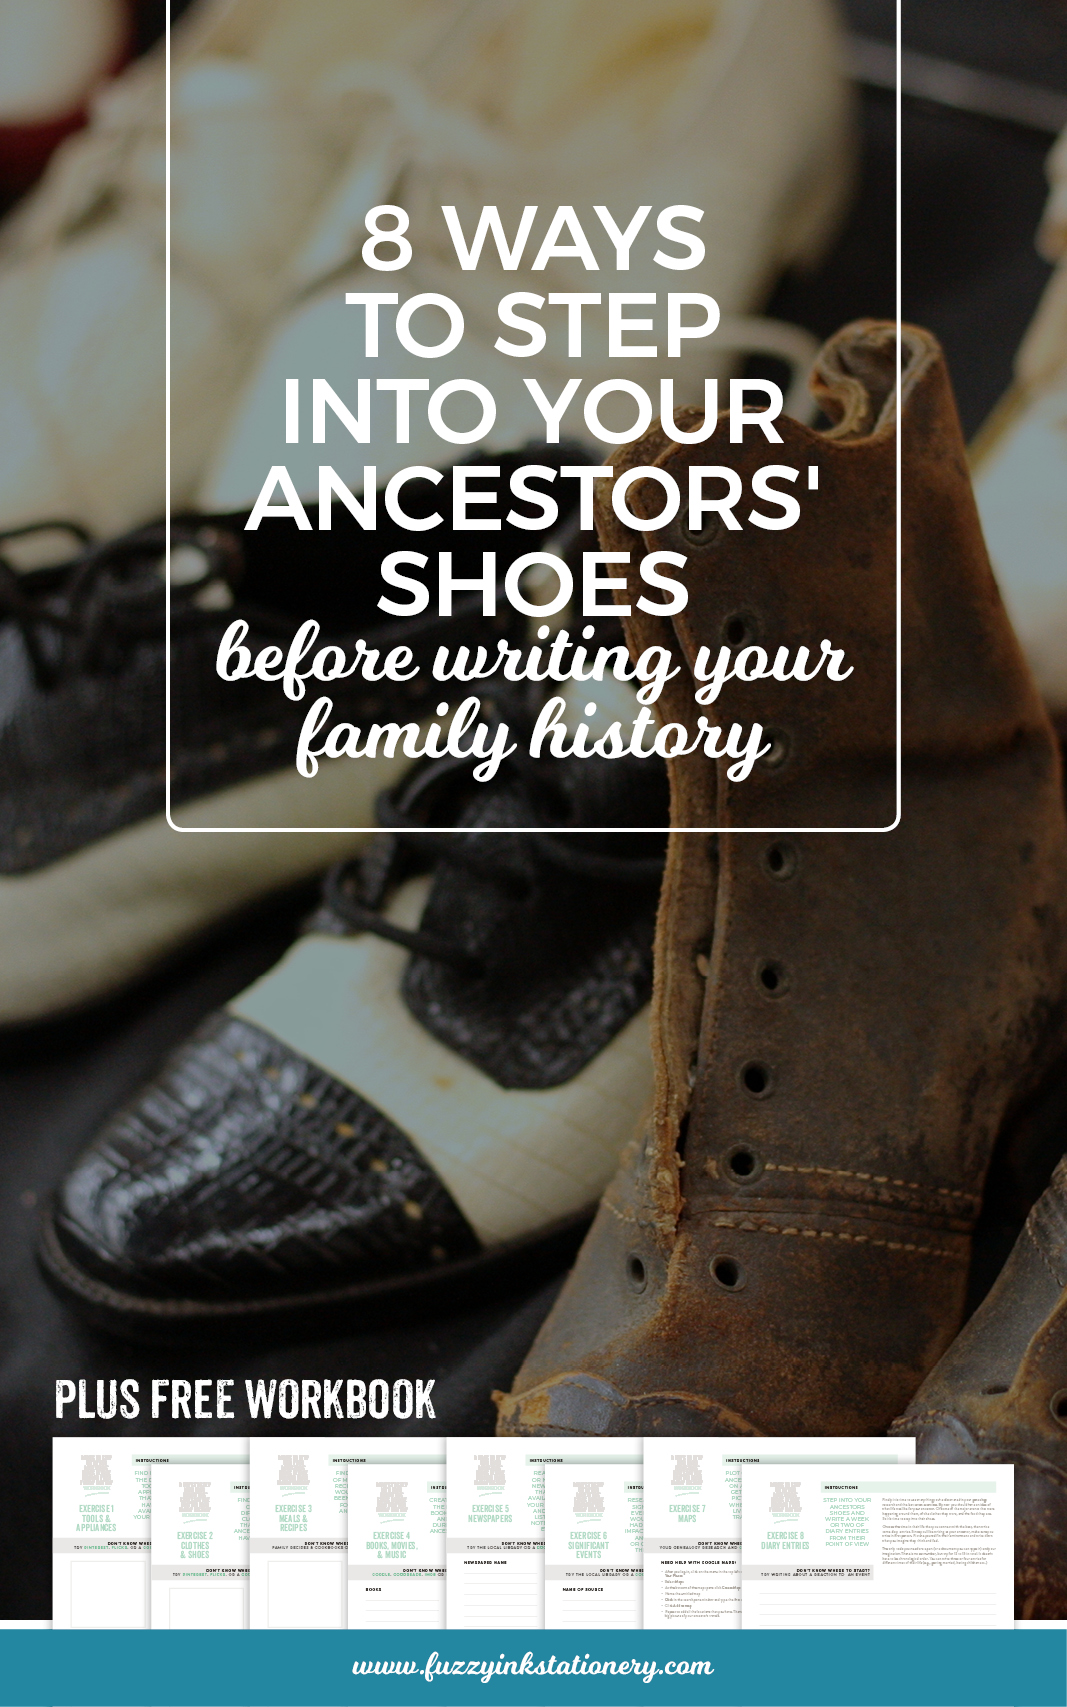 Fuzzy Ink Stationery shares eight ways to step into your ancestors' shoes before writing your family history